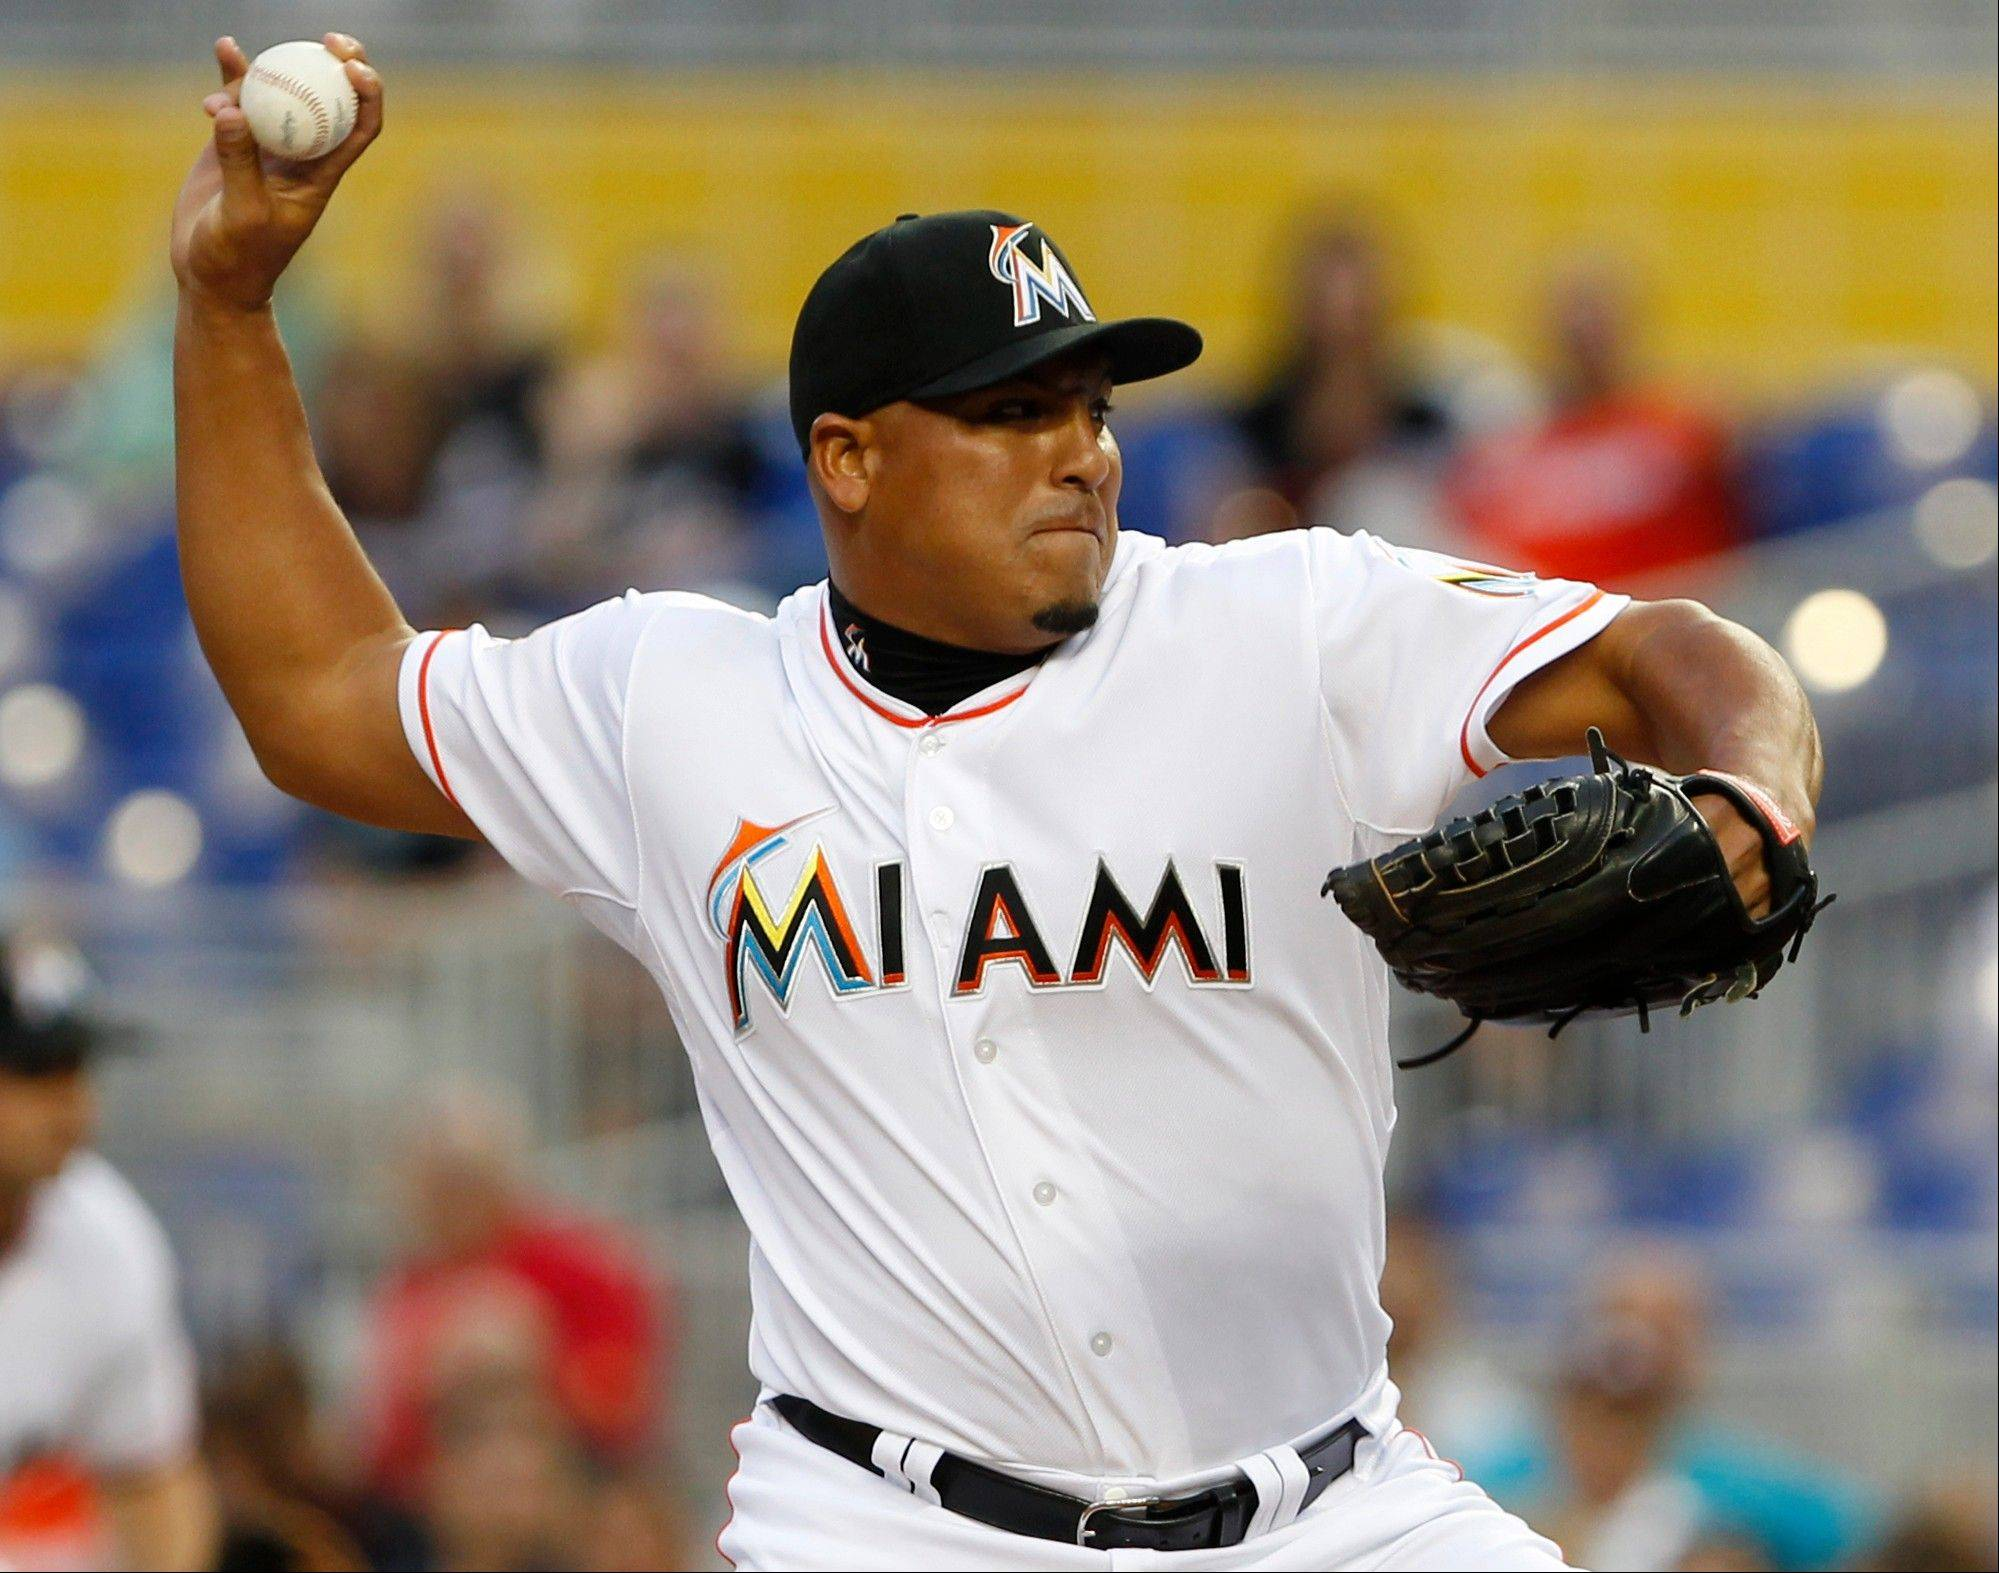 Miami Marlins' Carlos Zambrano delivers a pitch during the first inning of a baseball game against the Houston Astros, Saturday, April 14, 2012, in Miami.